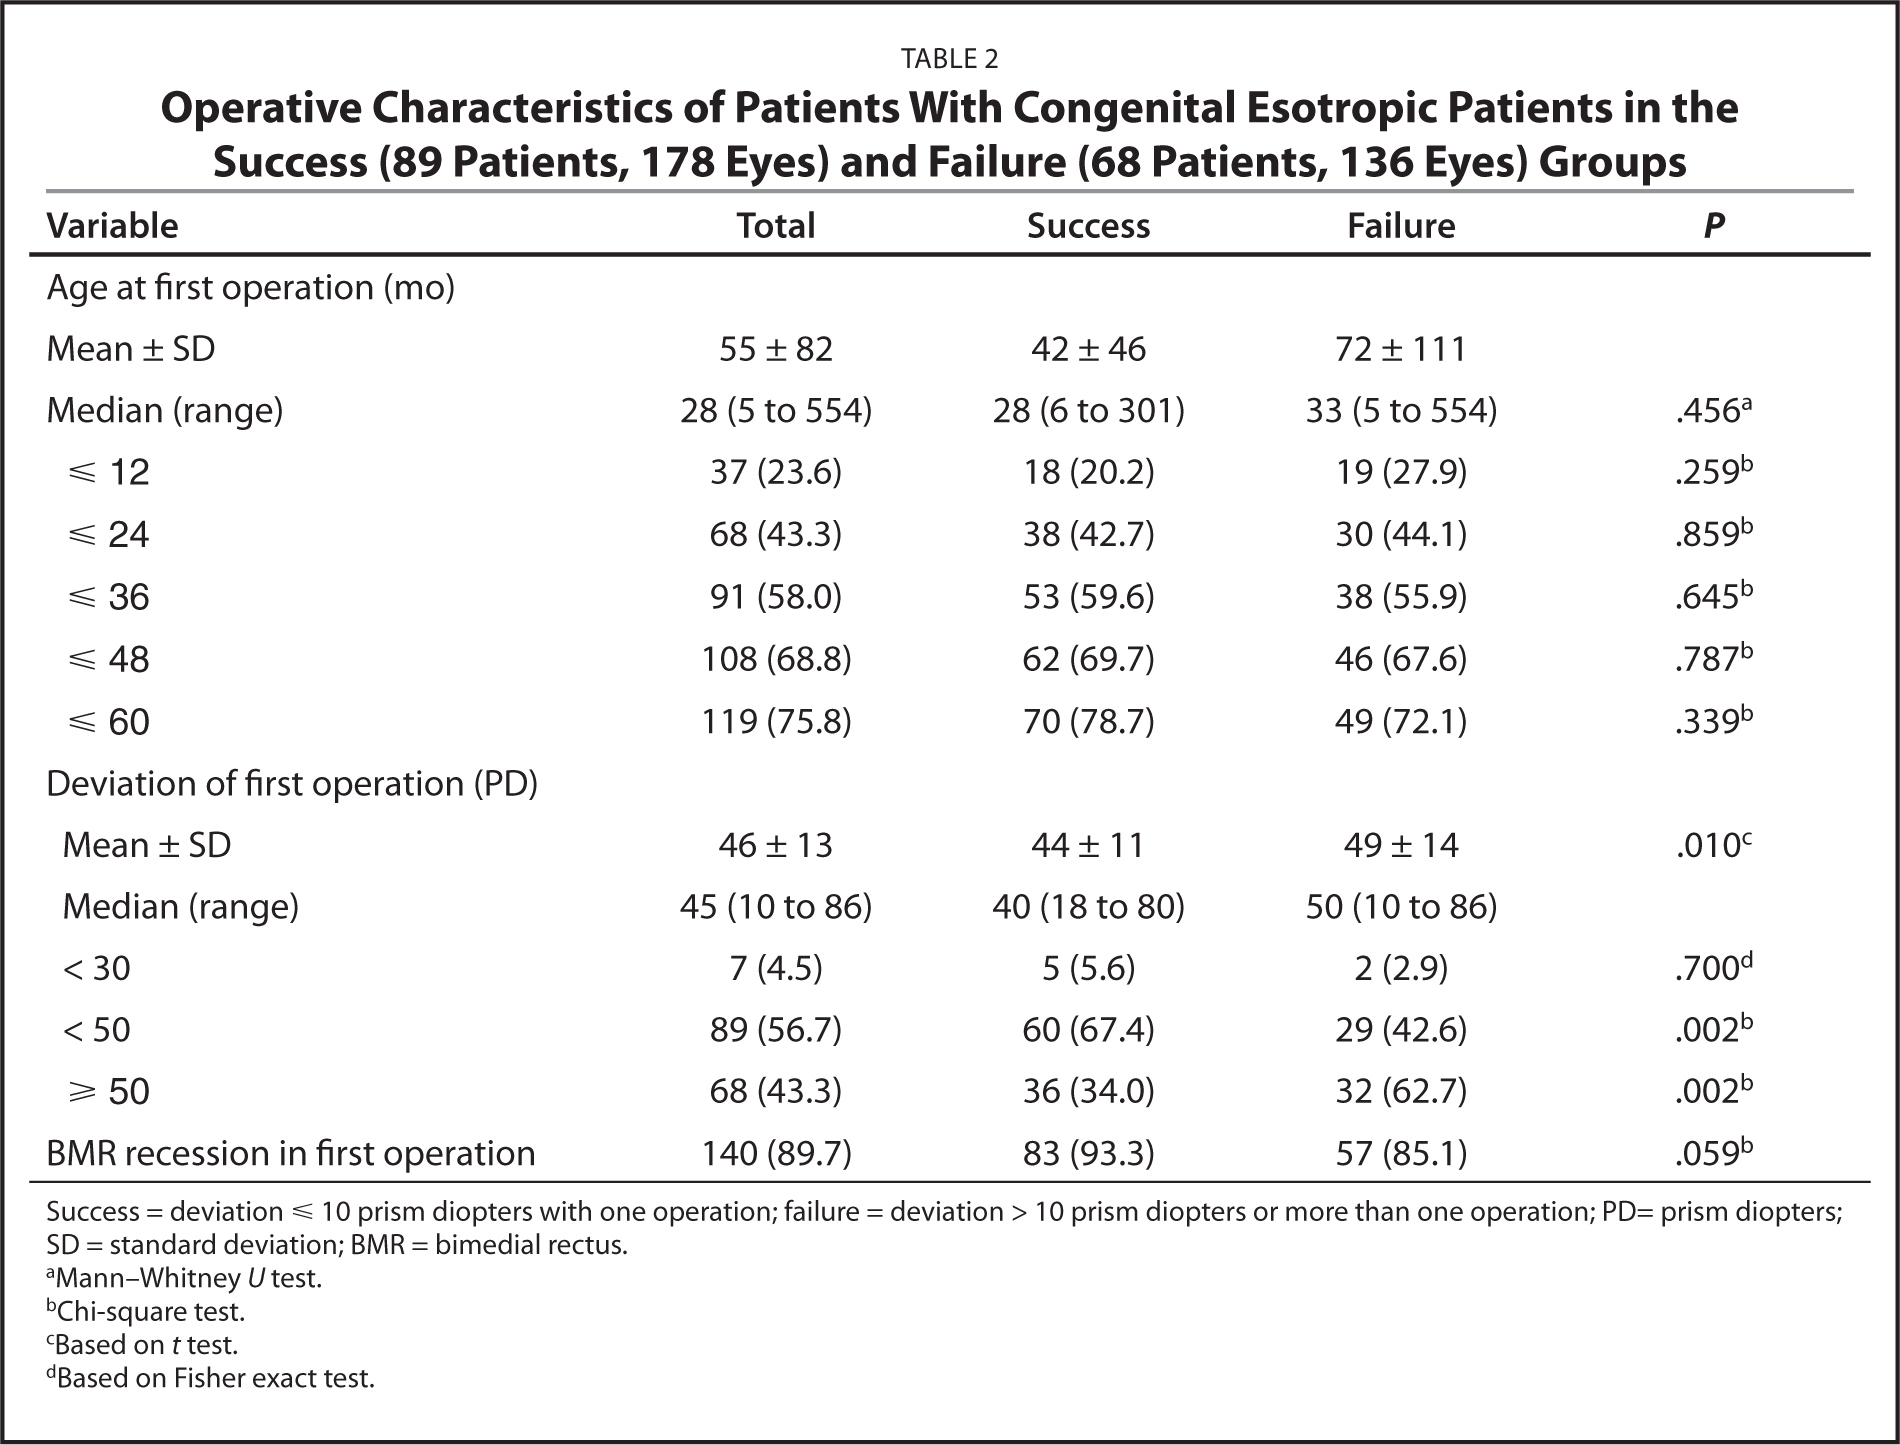 Operative Characteristics of Patients With Congenital Esotropic Patients in the Success (89 Patients, 178 Eyes) and Failure (68 Patients, 136 Eyes) Groups